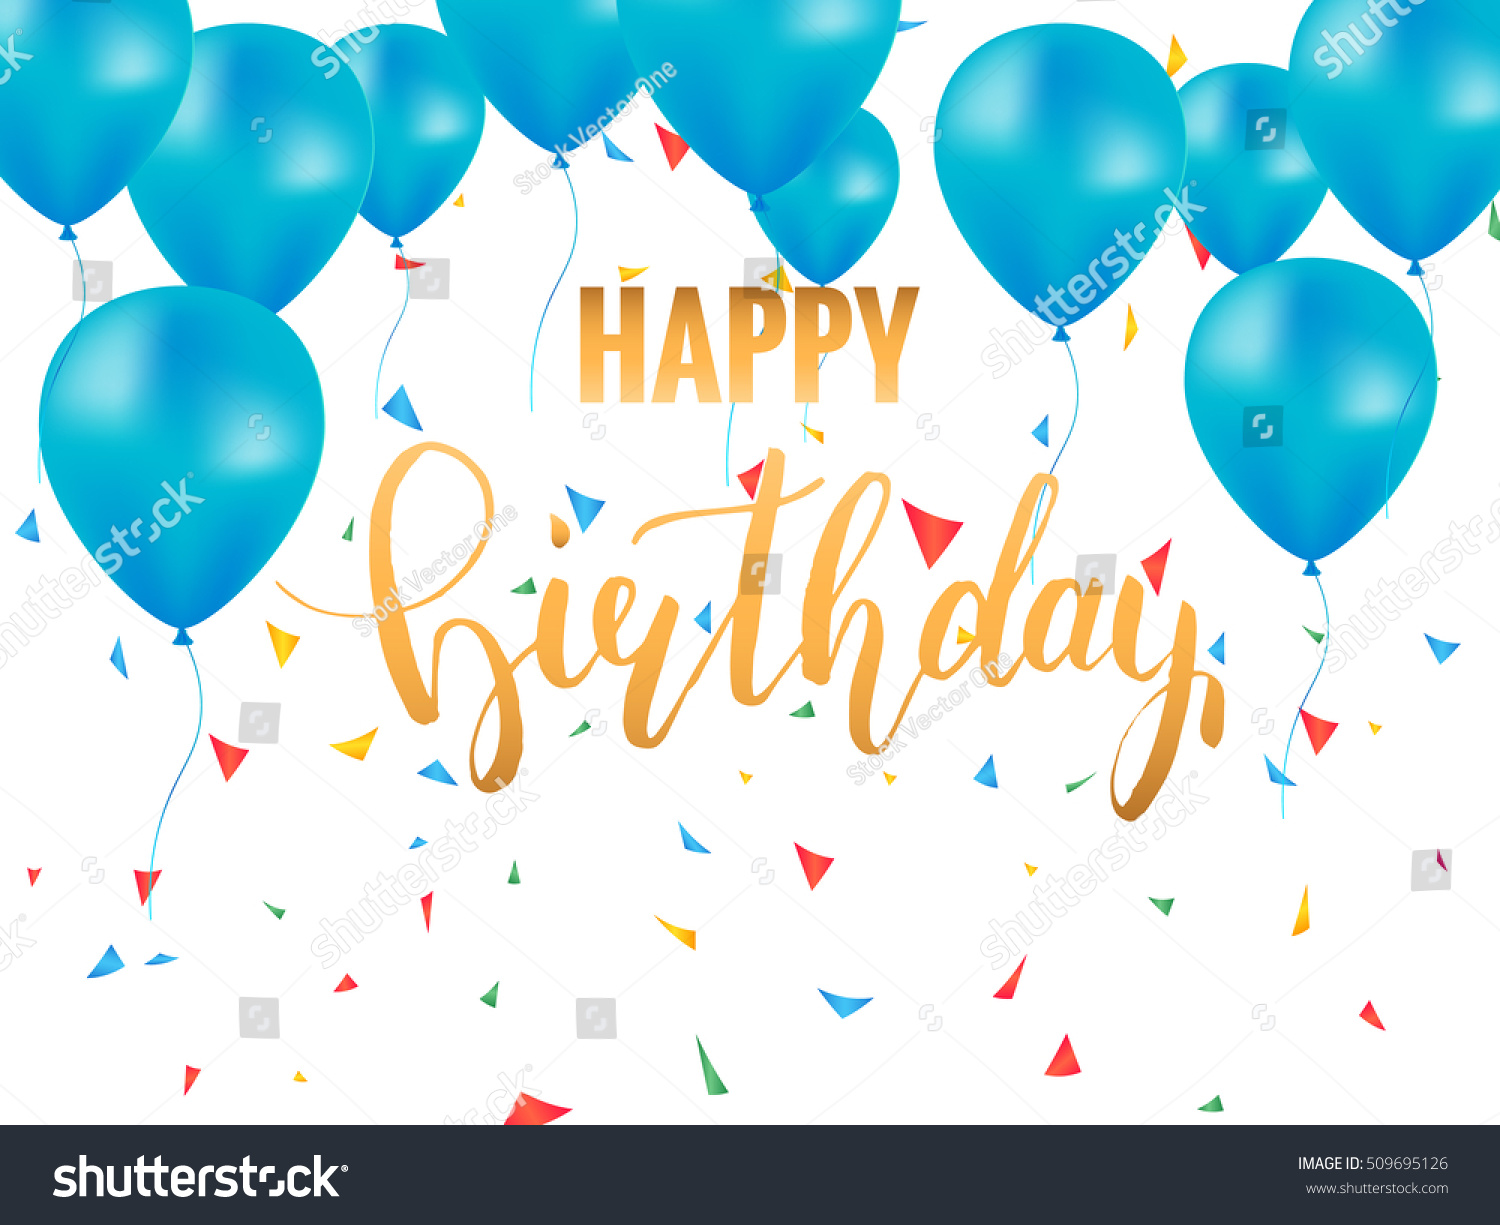 Happy Birthday Card Template. Golden Brush Lettering For Birthday Card